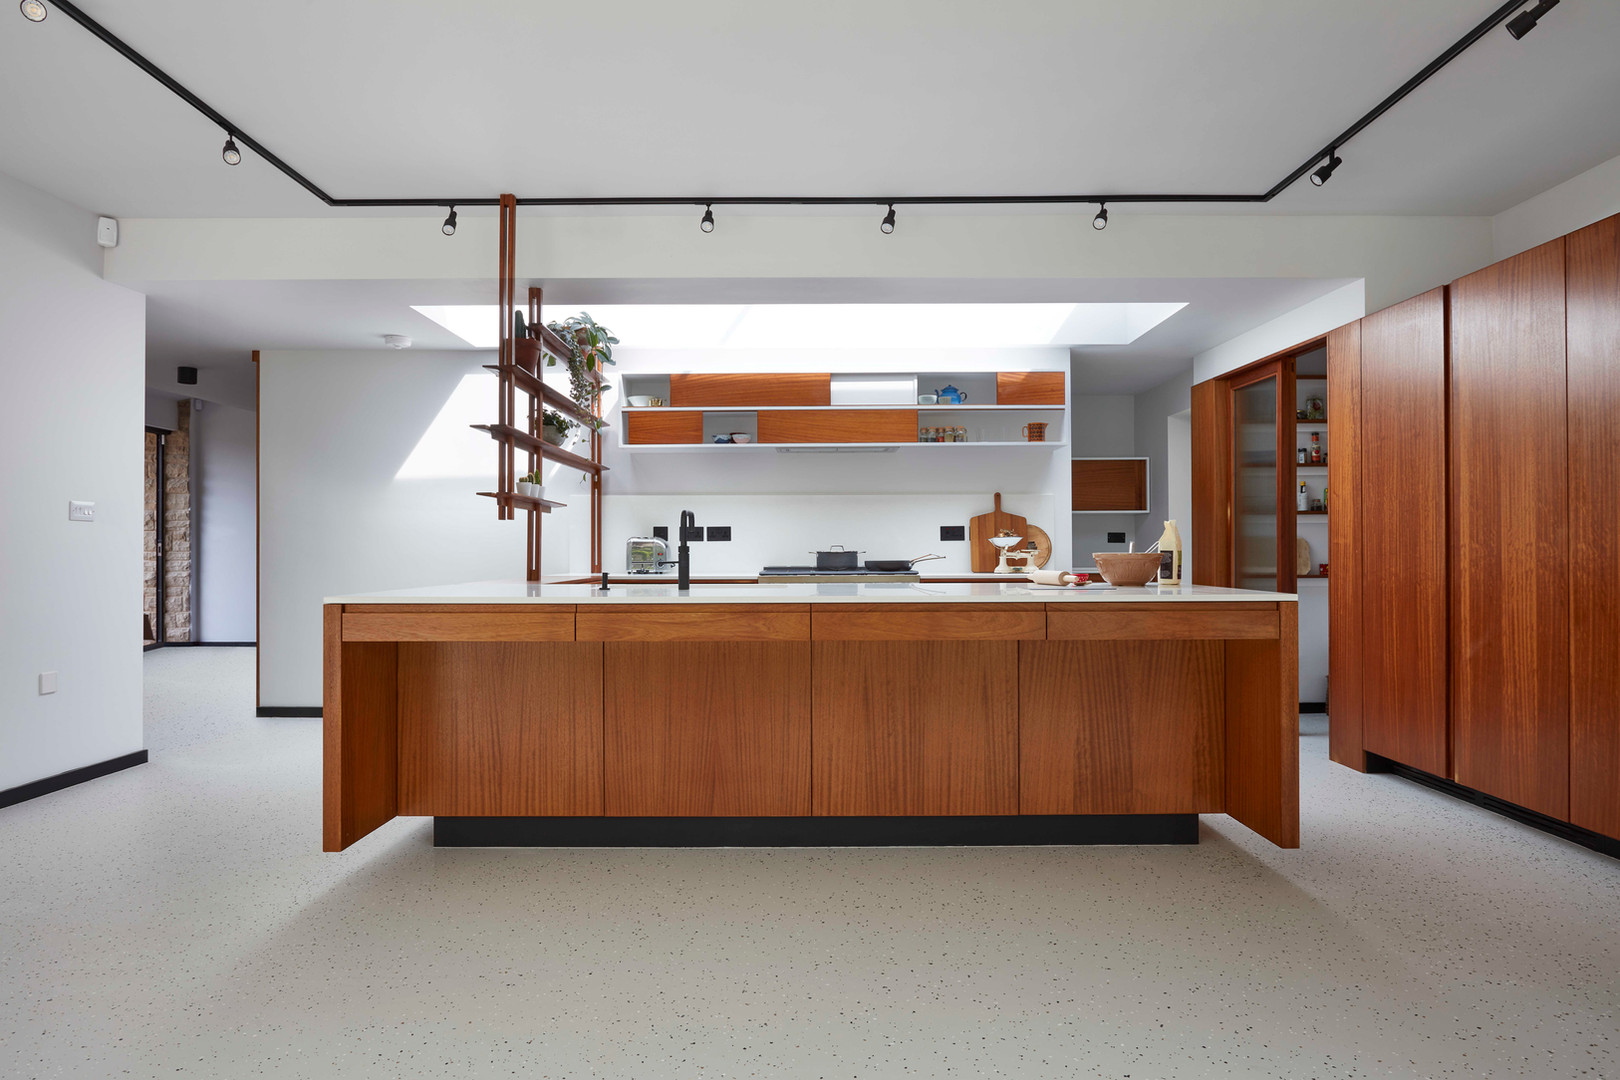 H Miller Bros | Luxury kitchen makers | Designer kitchen island, handmade in solid wood | Liverpool, Manchester, Cheshire, and Wirral